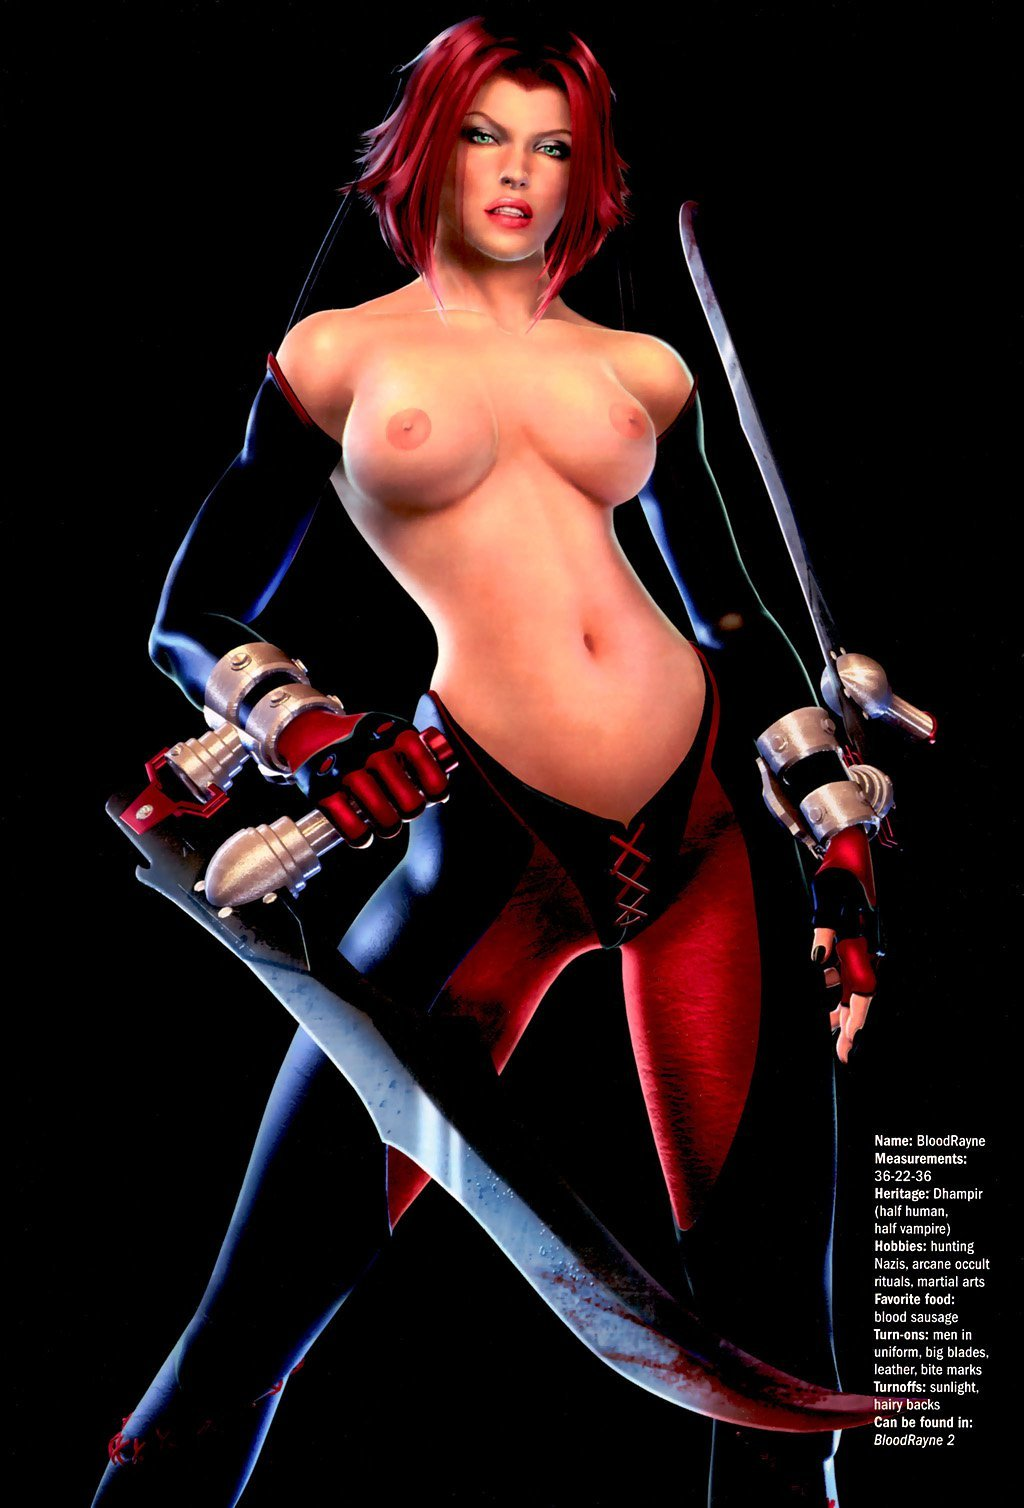 Bloodrayne porn human porno photo